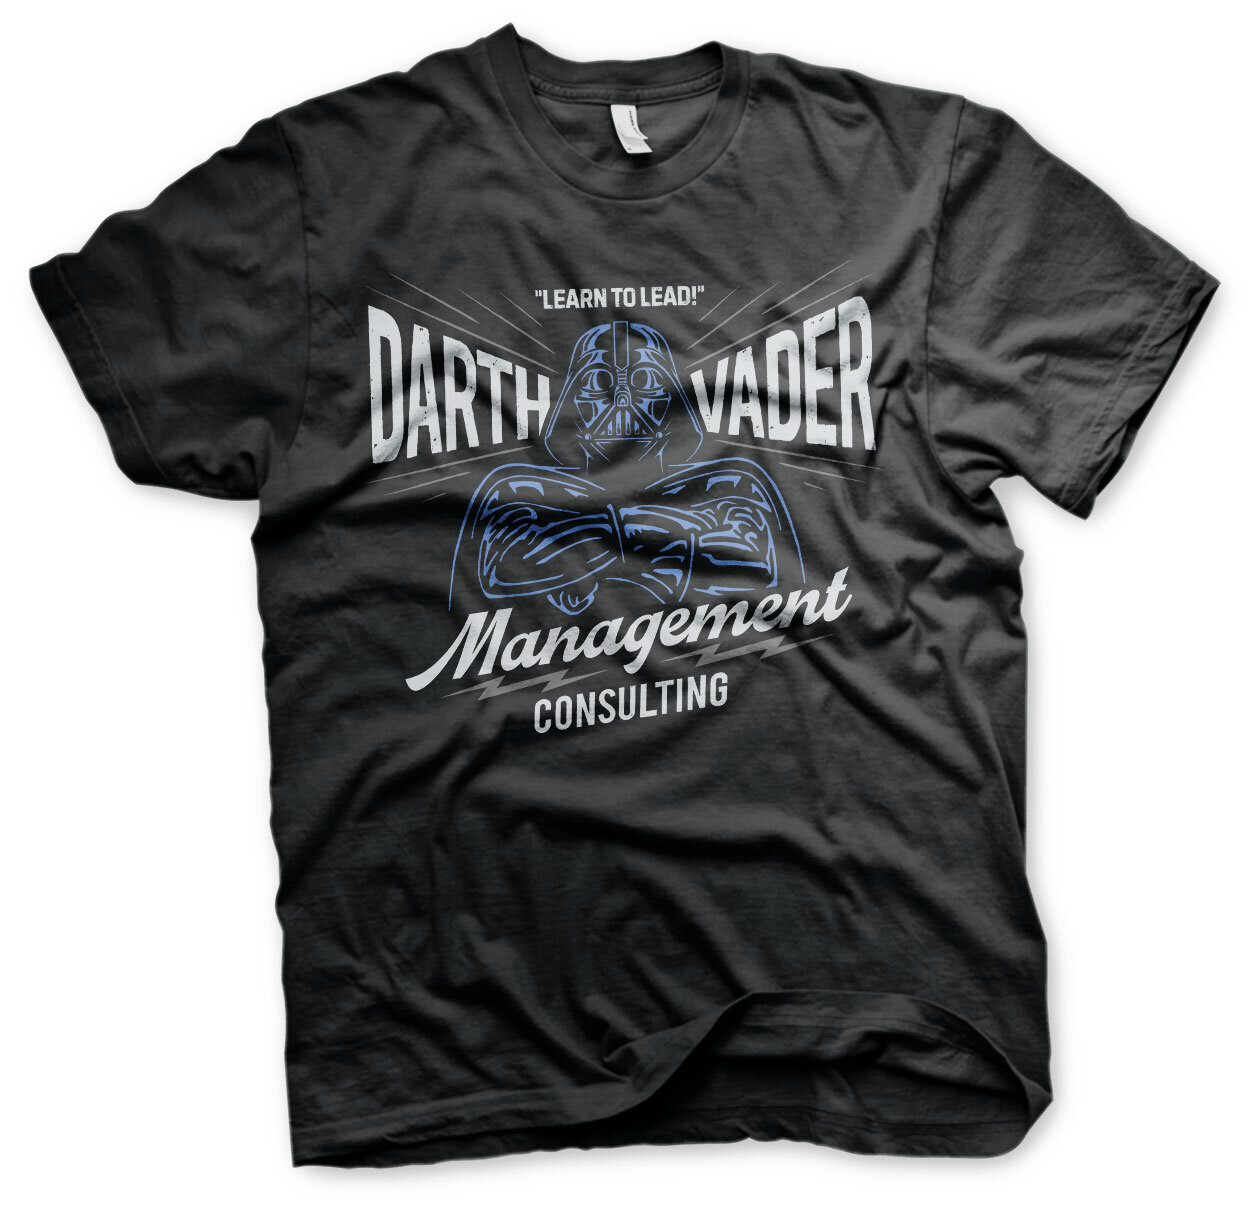 Darth Vader Management Consulting T-Shirt